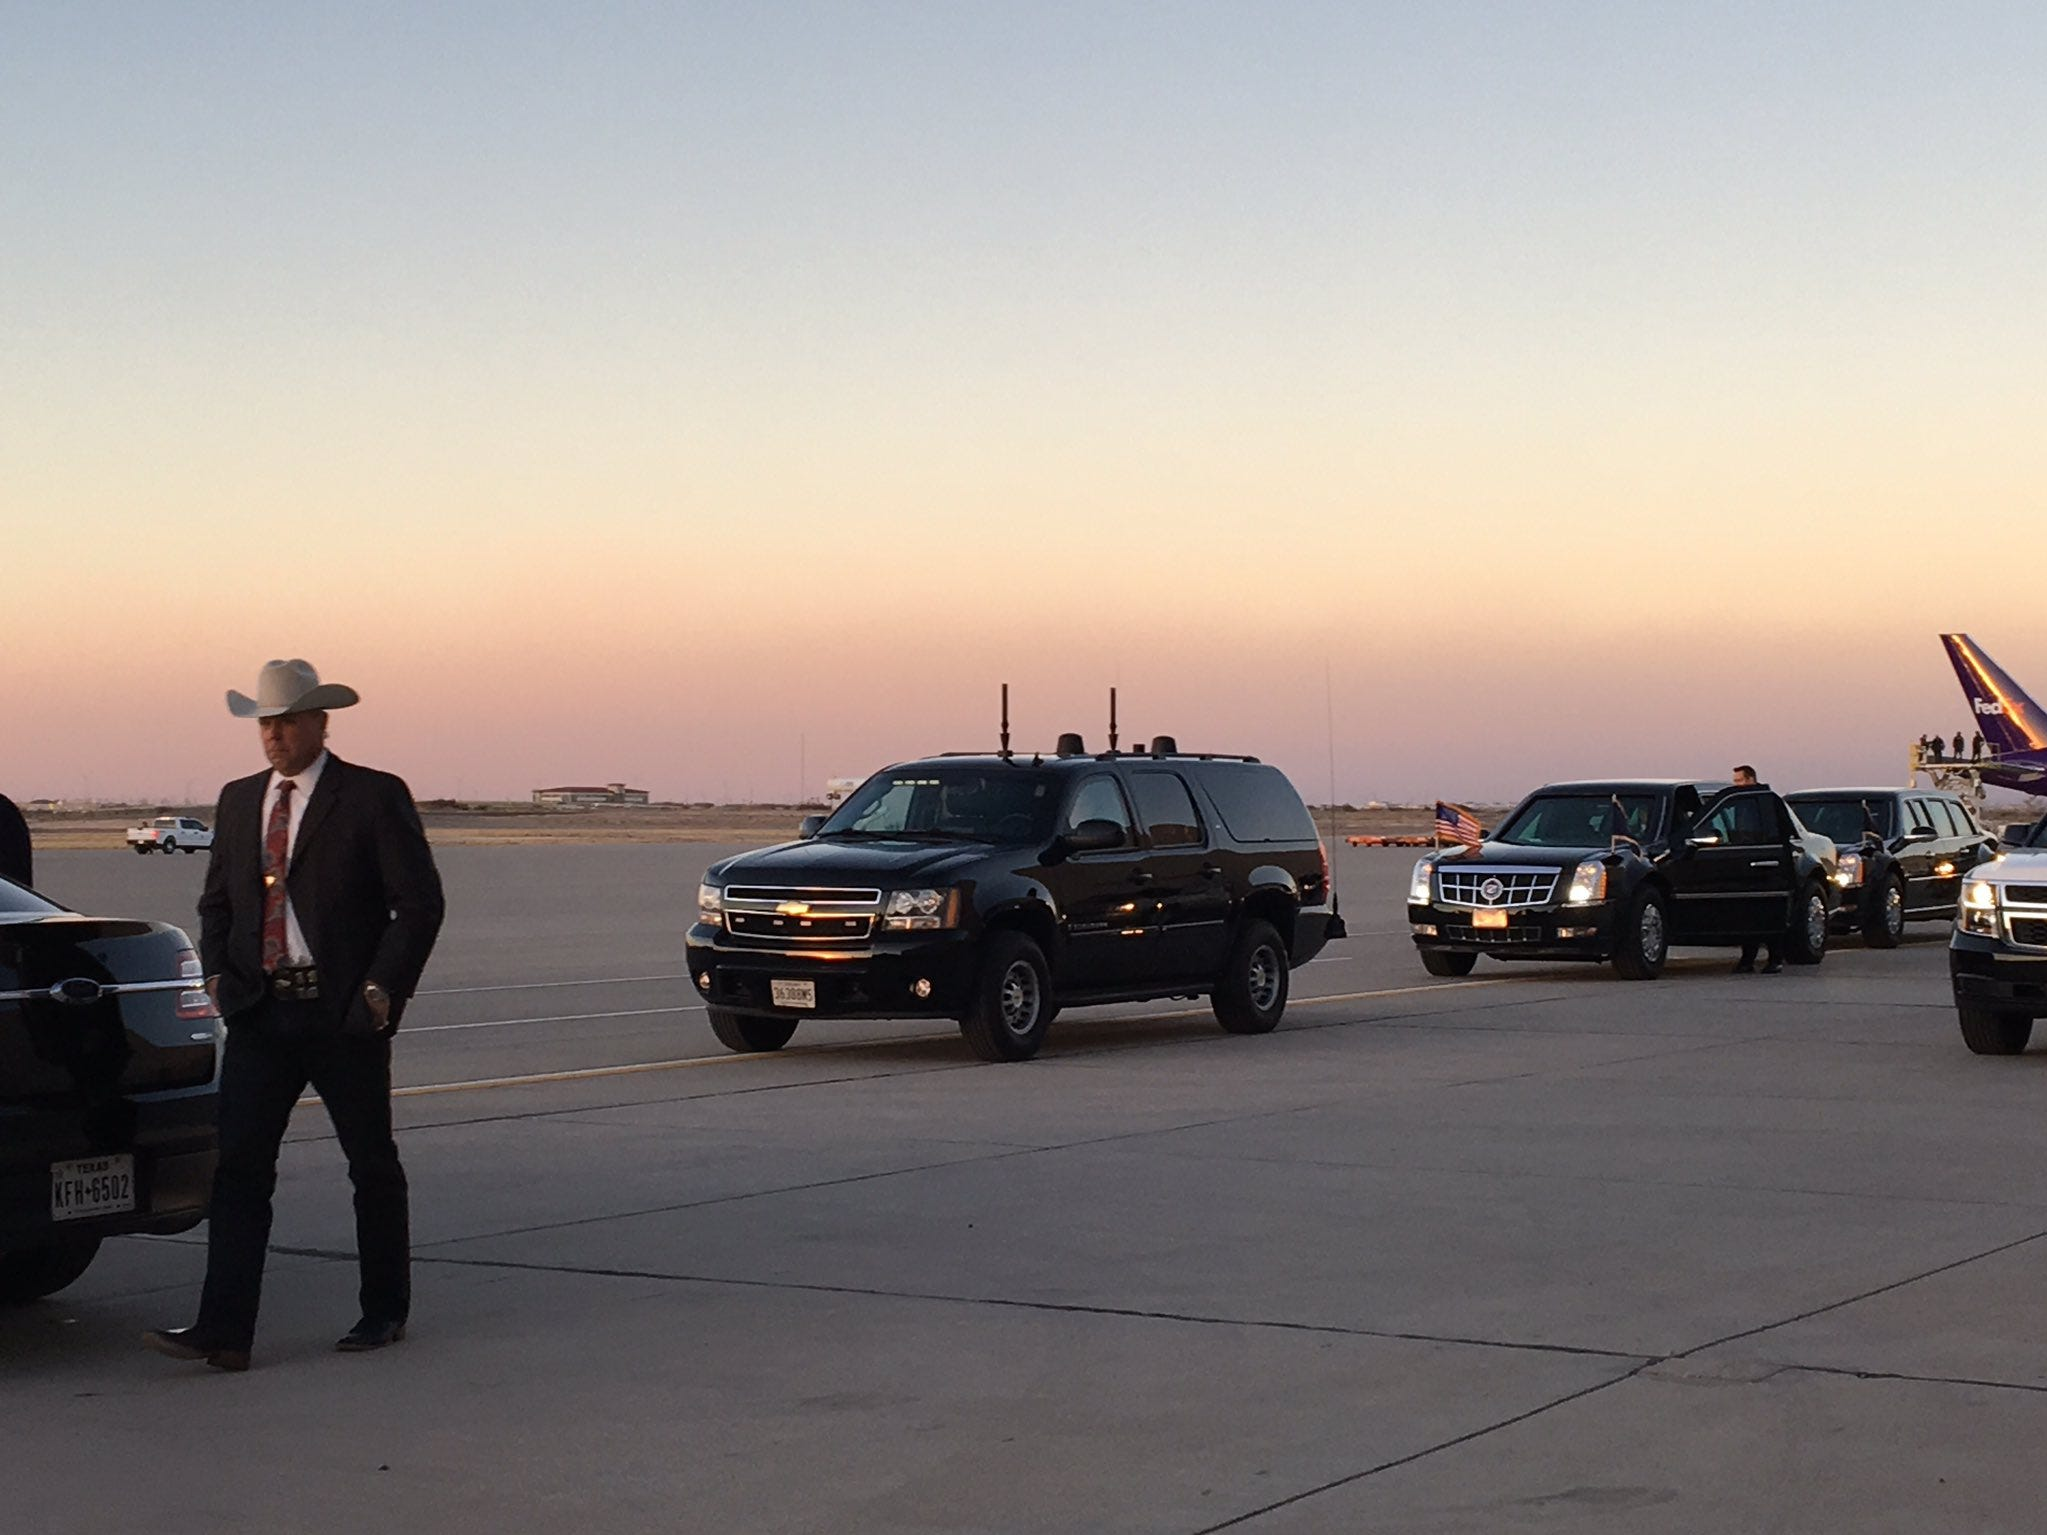 Dignitaries wait for the president Monday at the El Paso International Airport.